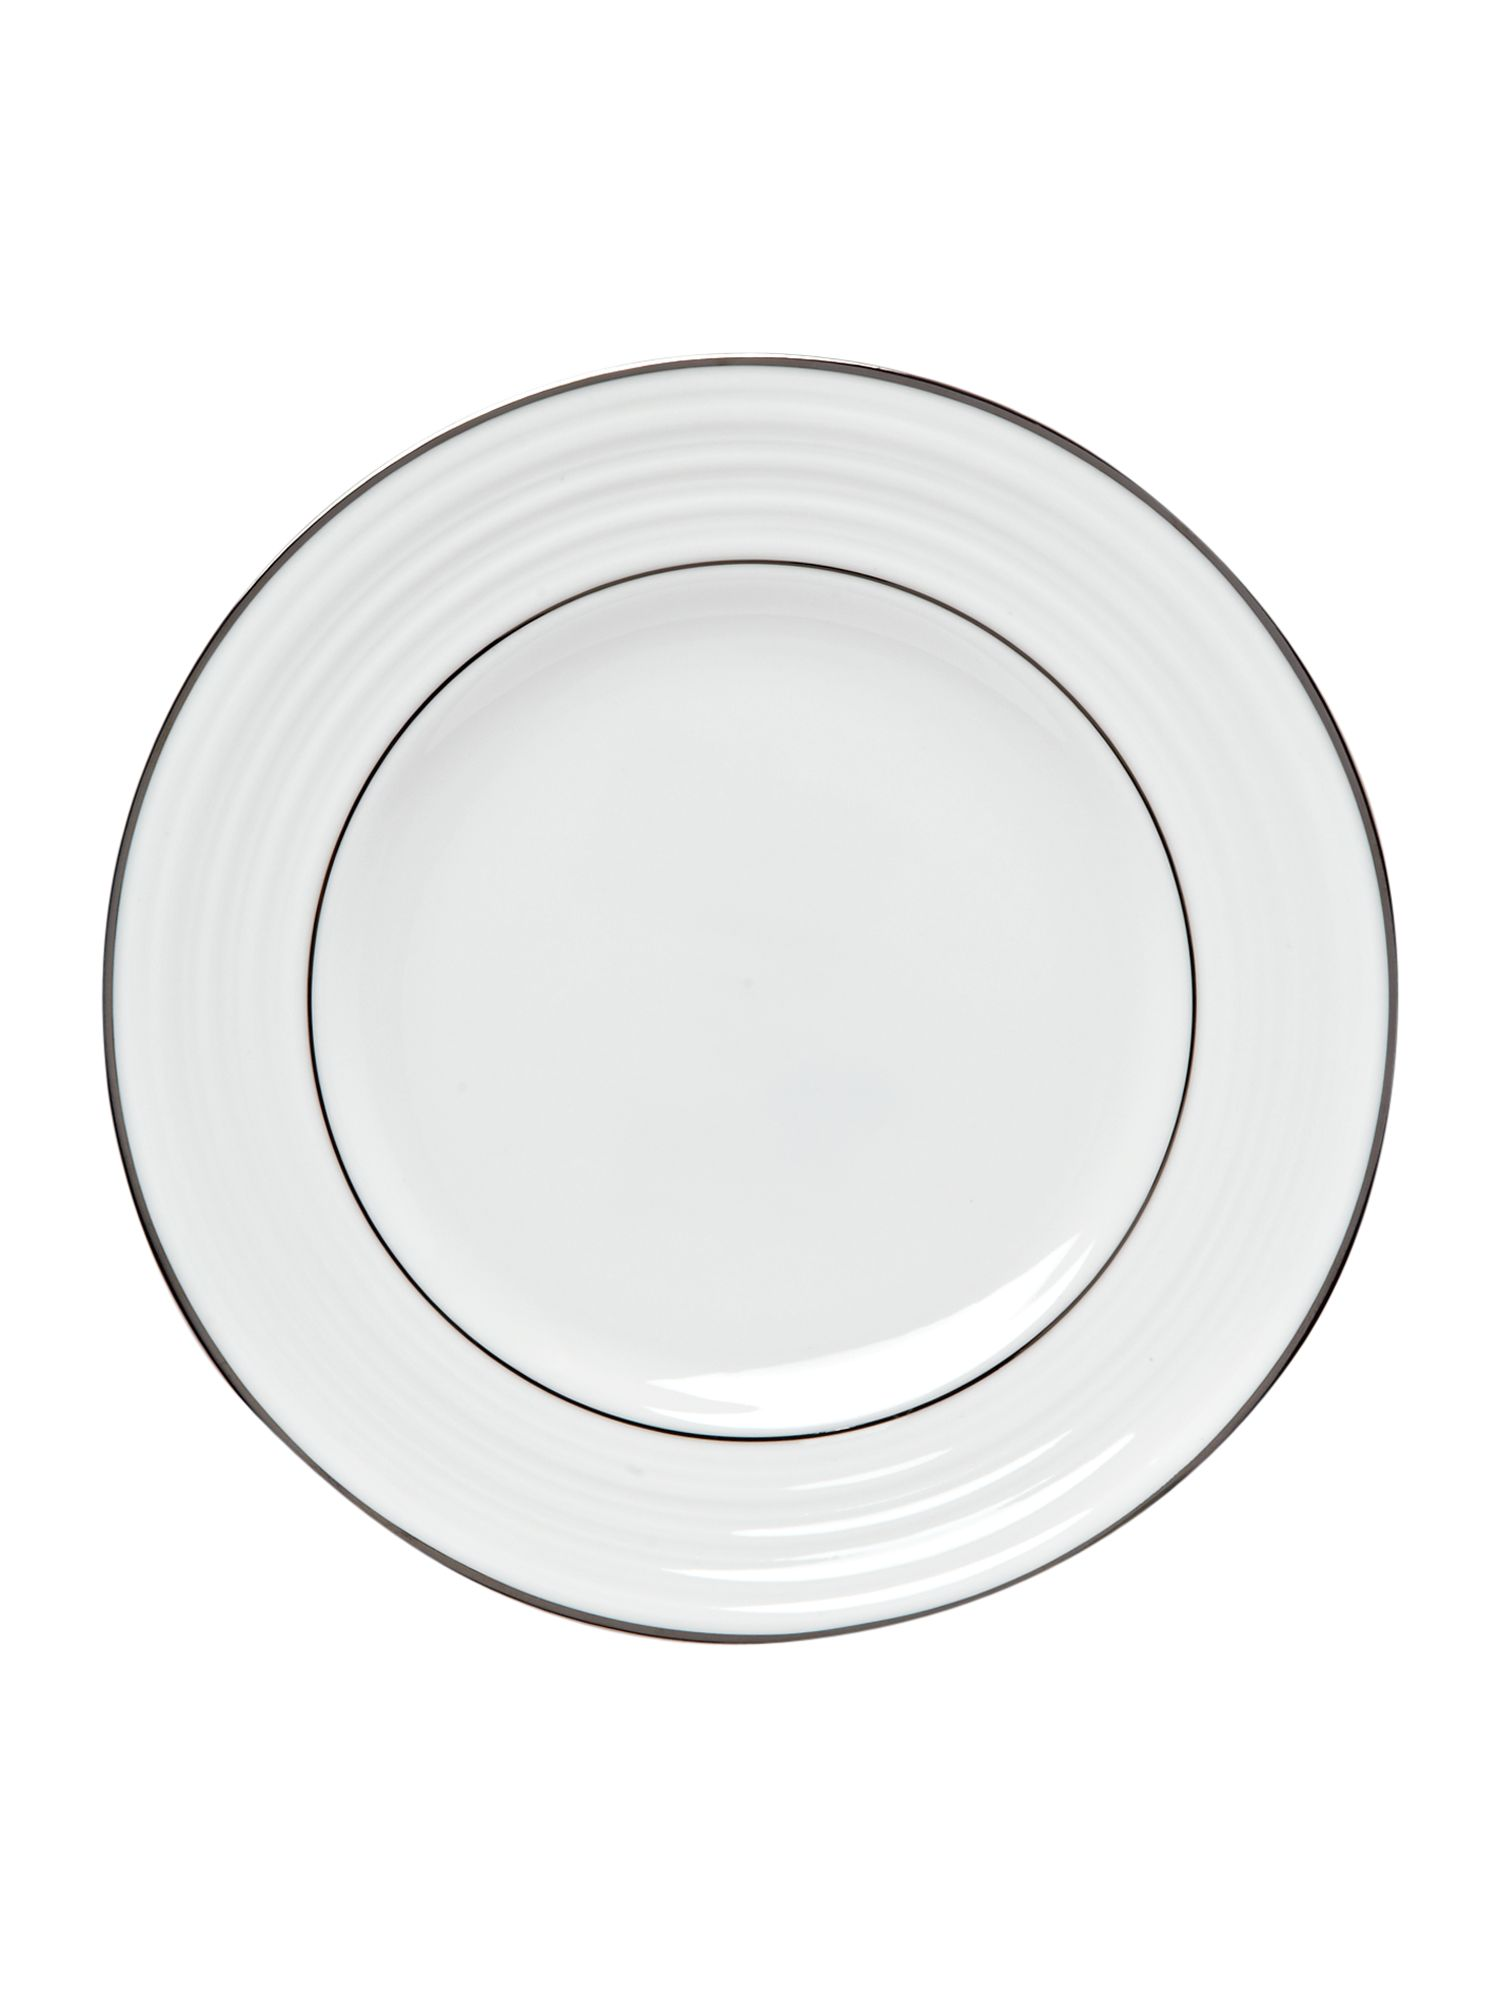 Soho platinum side plate